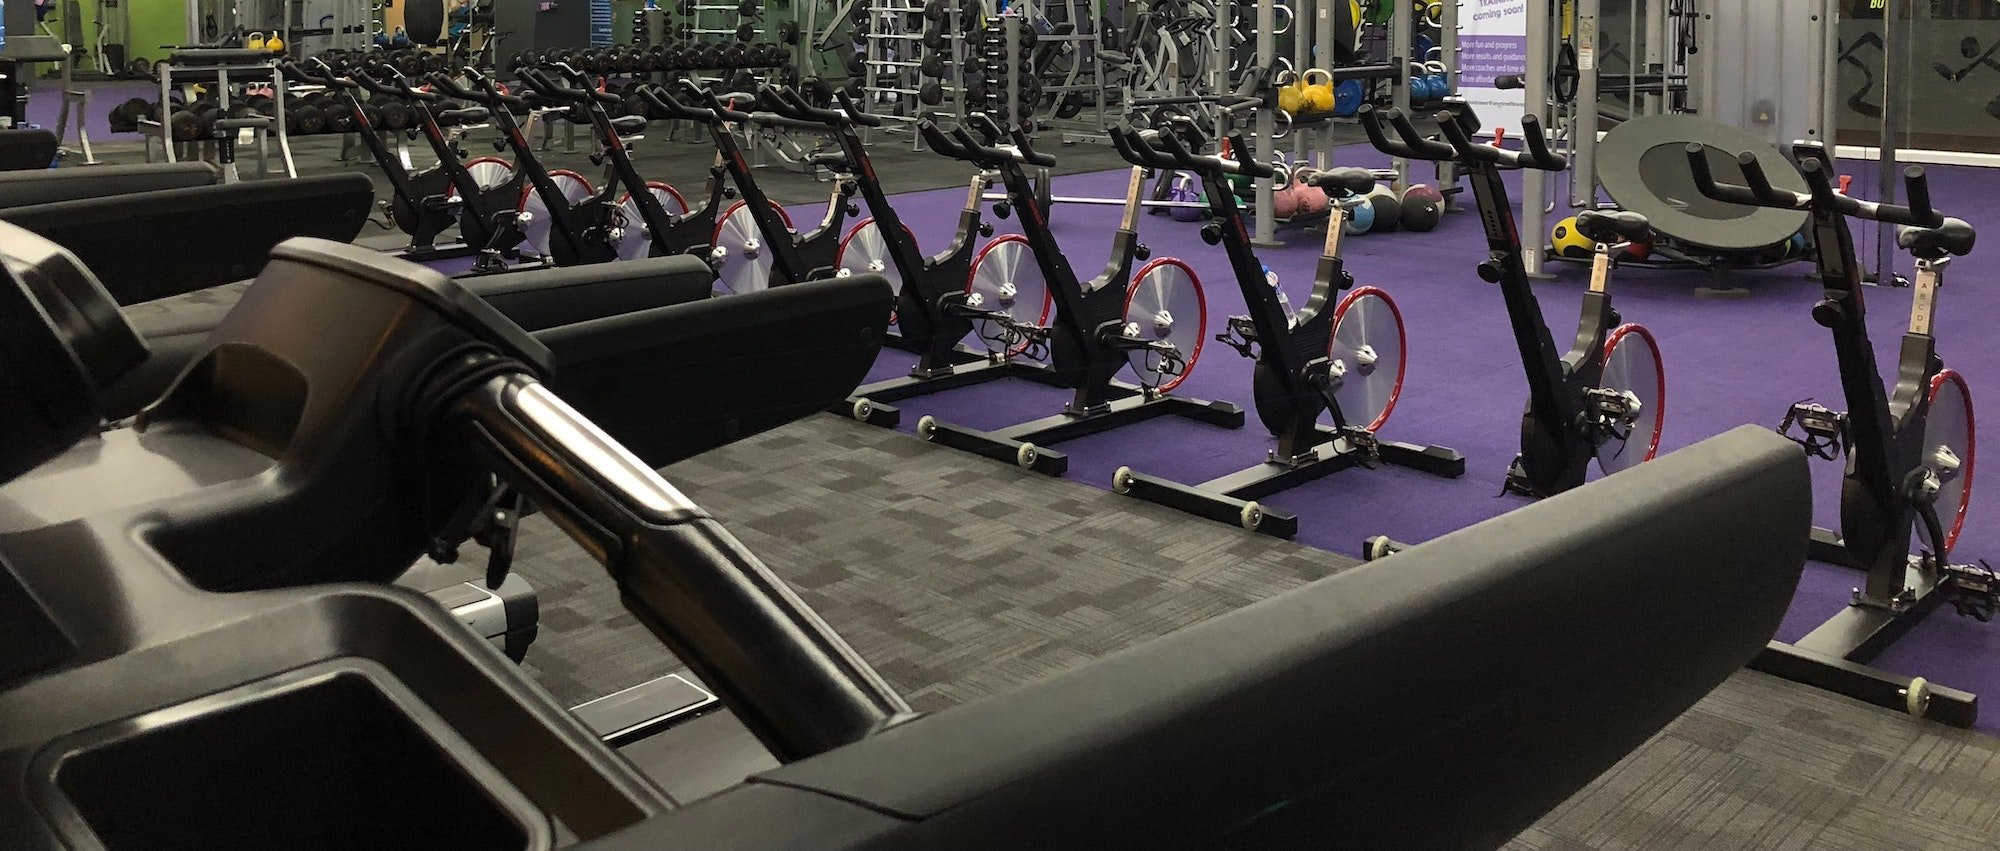 best exercise machines for weight loss